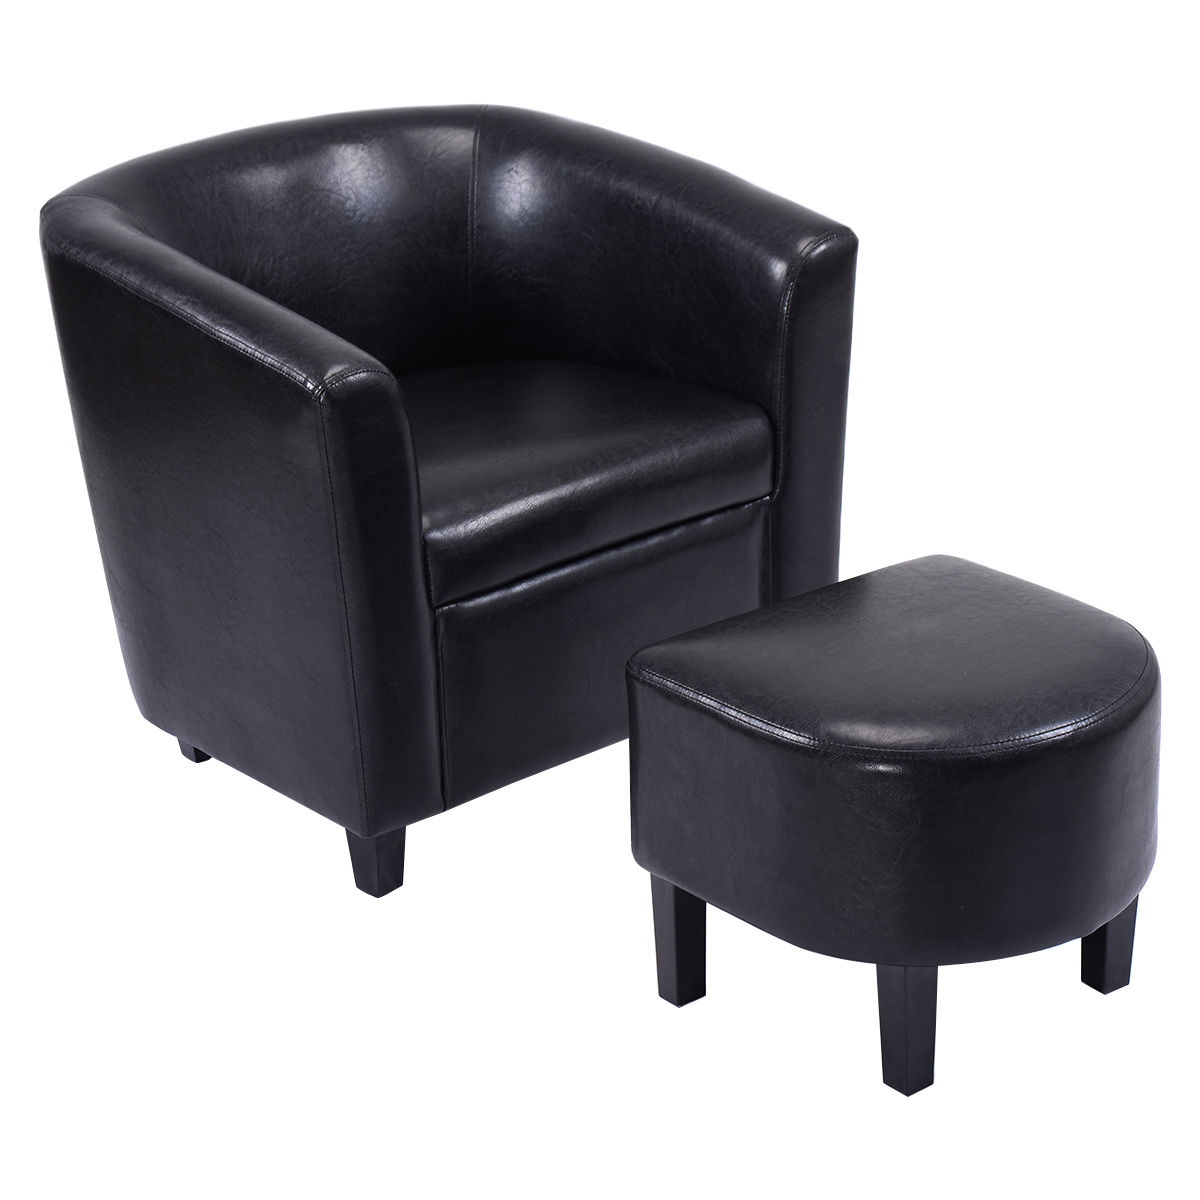 living room chair with ottoman. costway modern leisure chair pu leather wooden arm w/ottoman living room furniture with ottoman